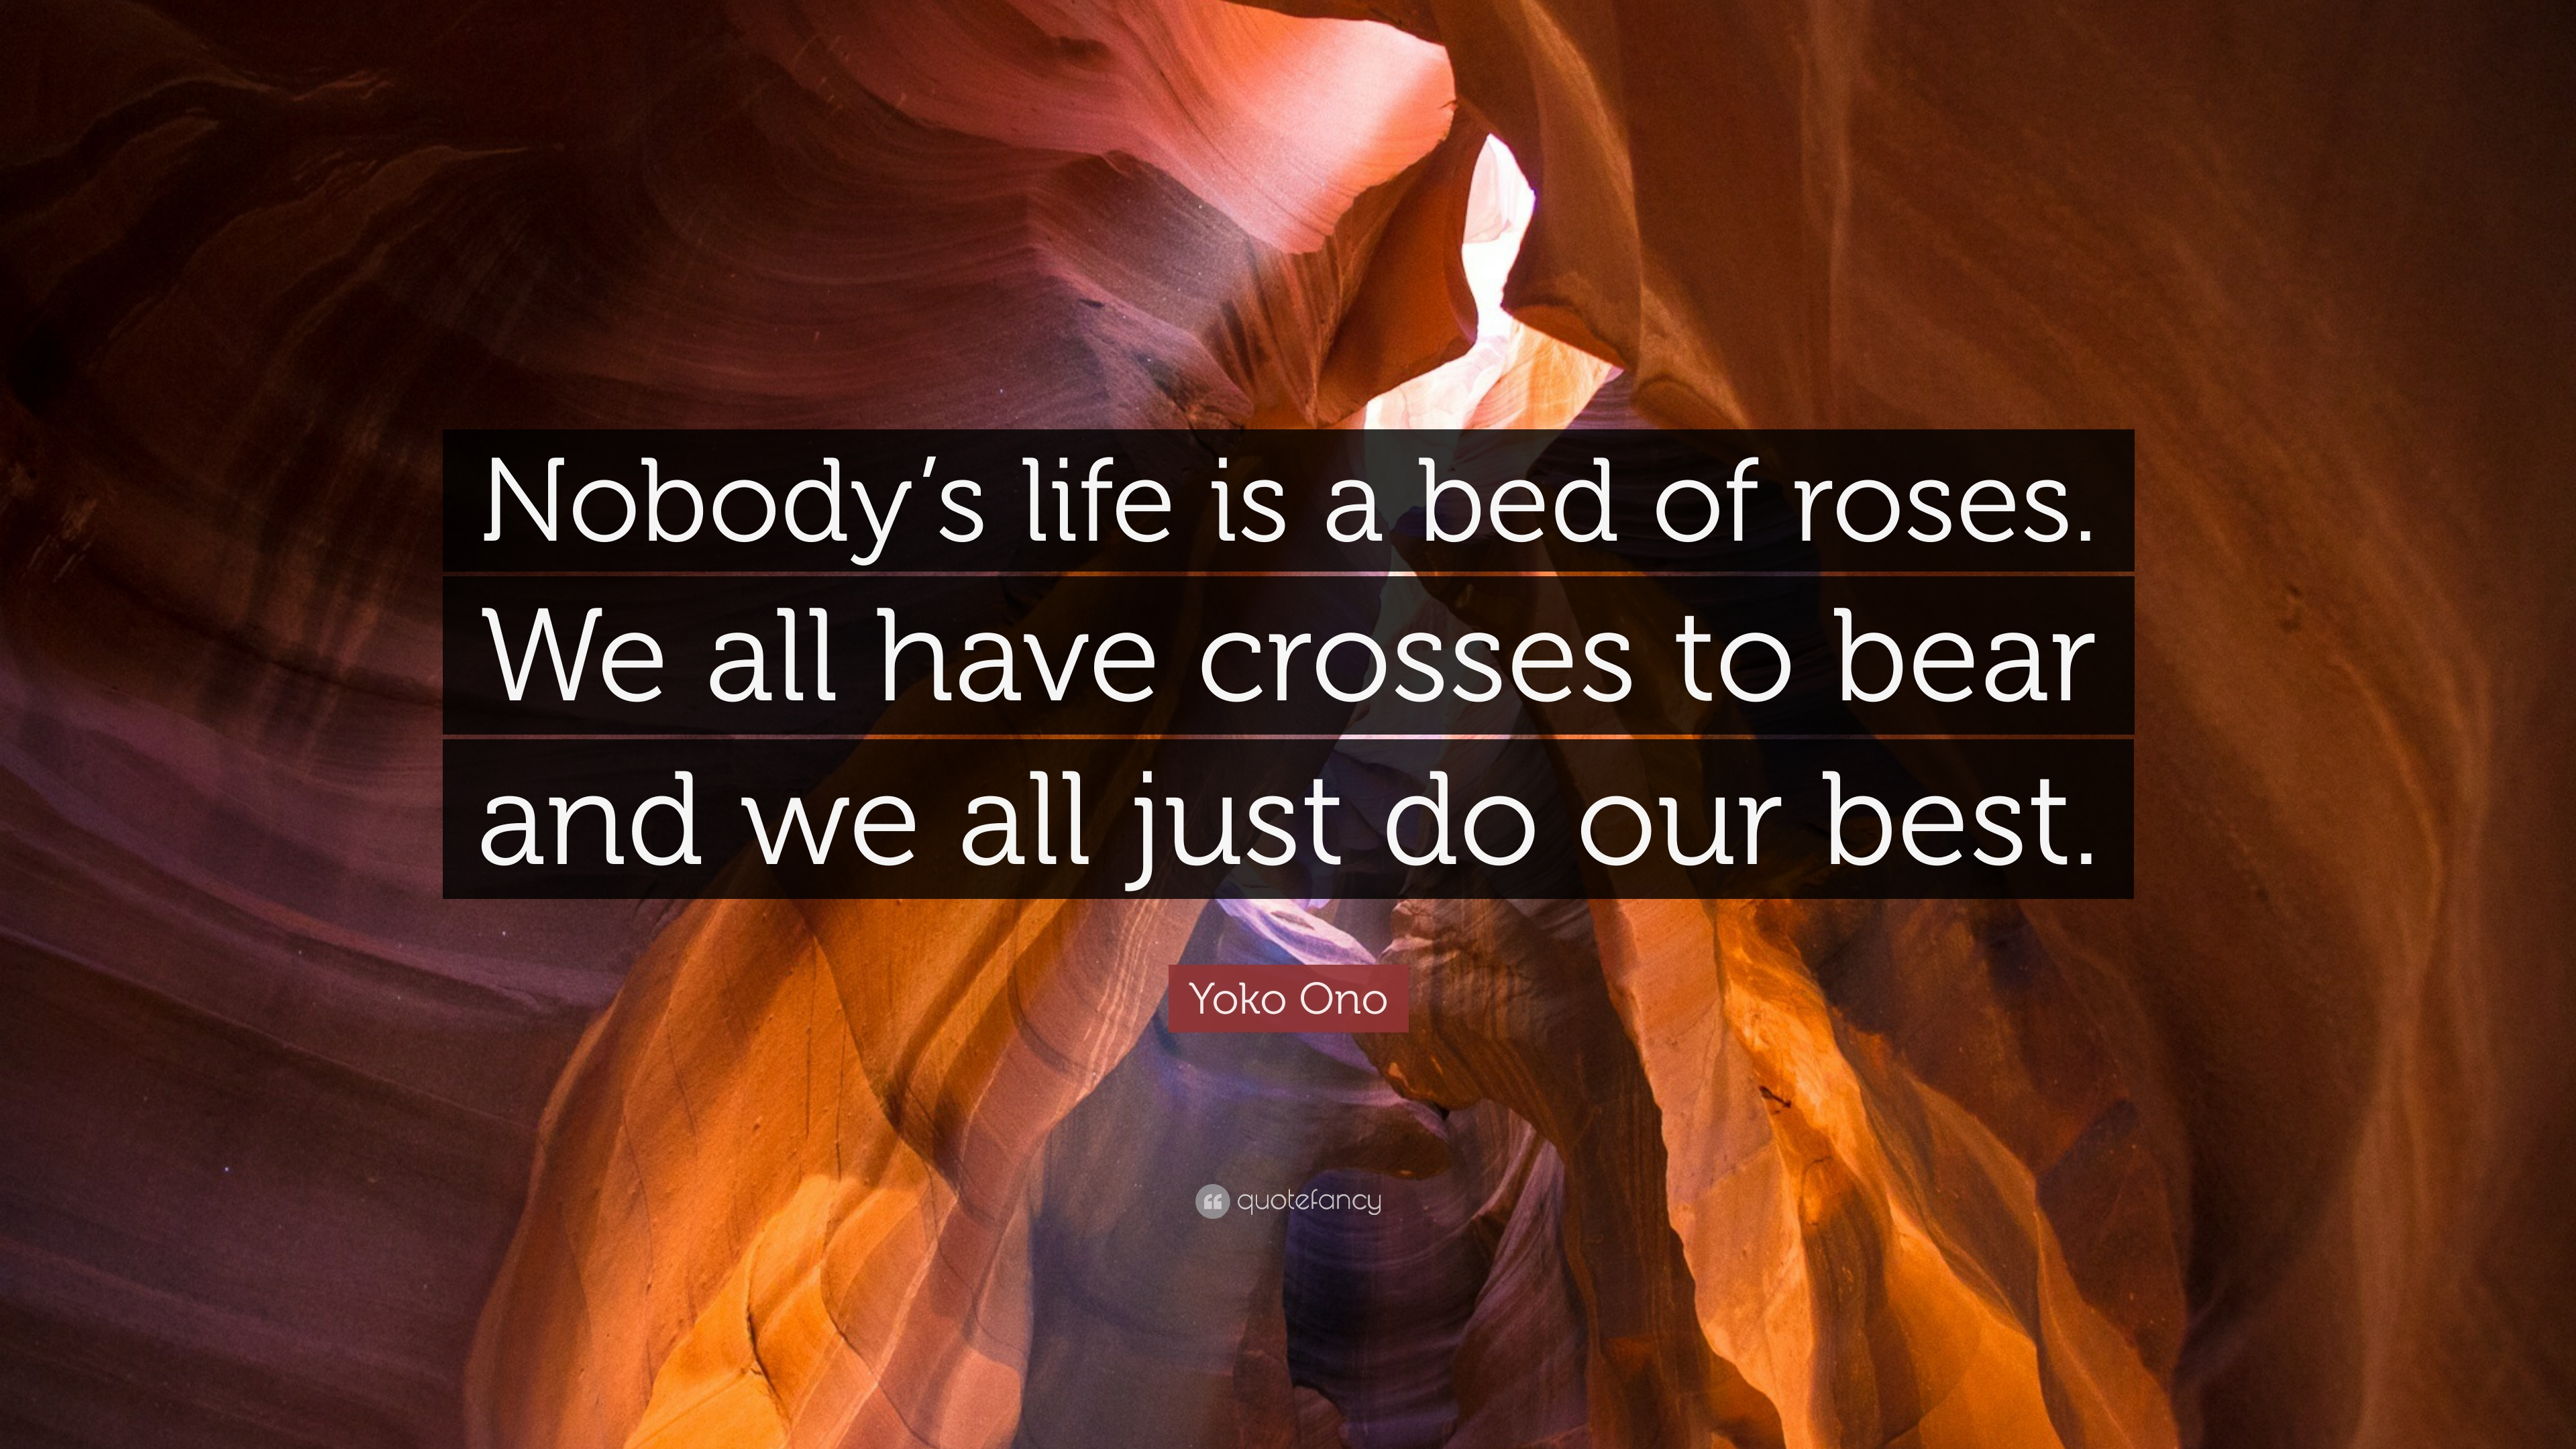 Essay about,life is not a bed of roses